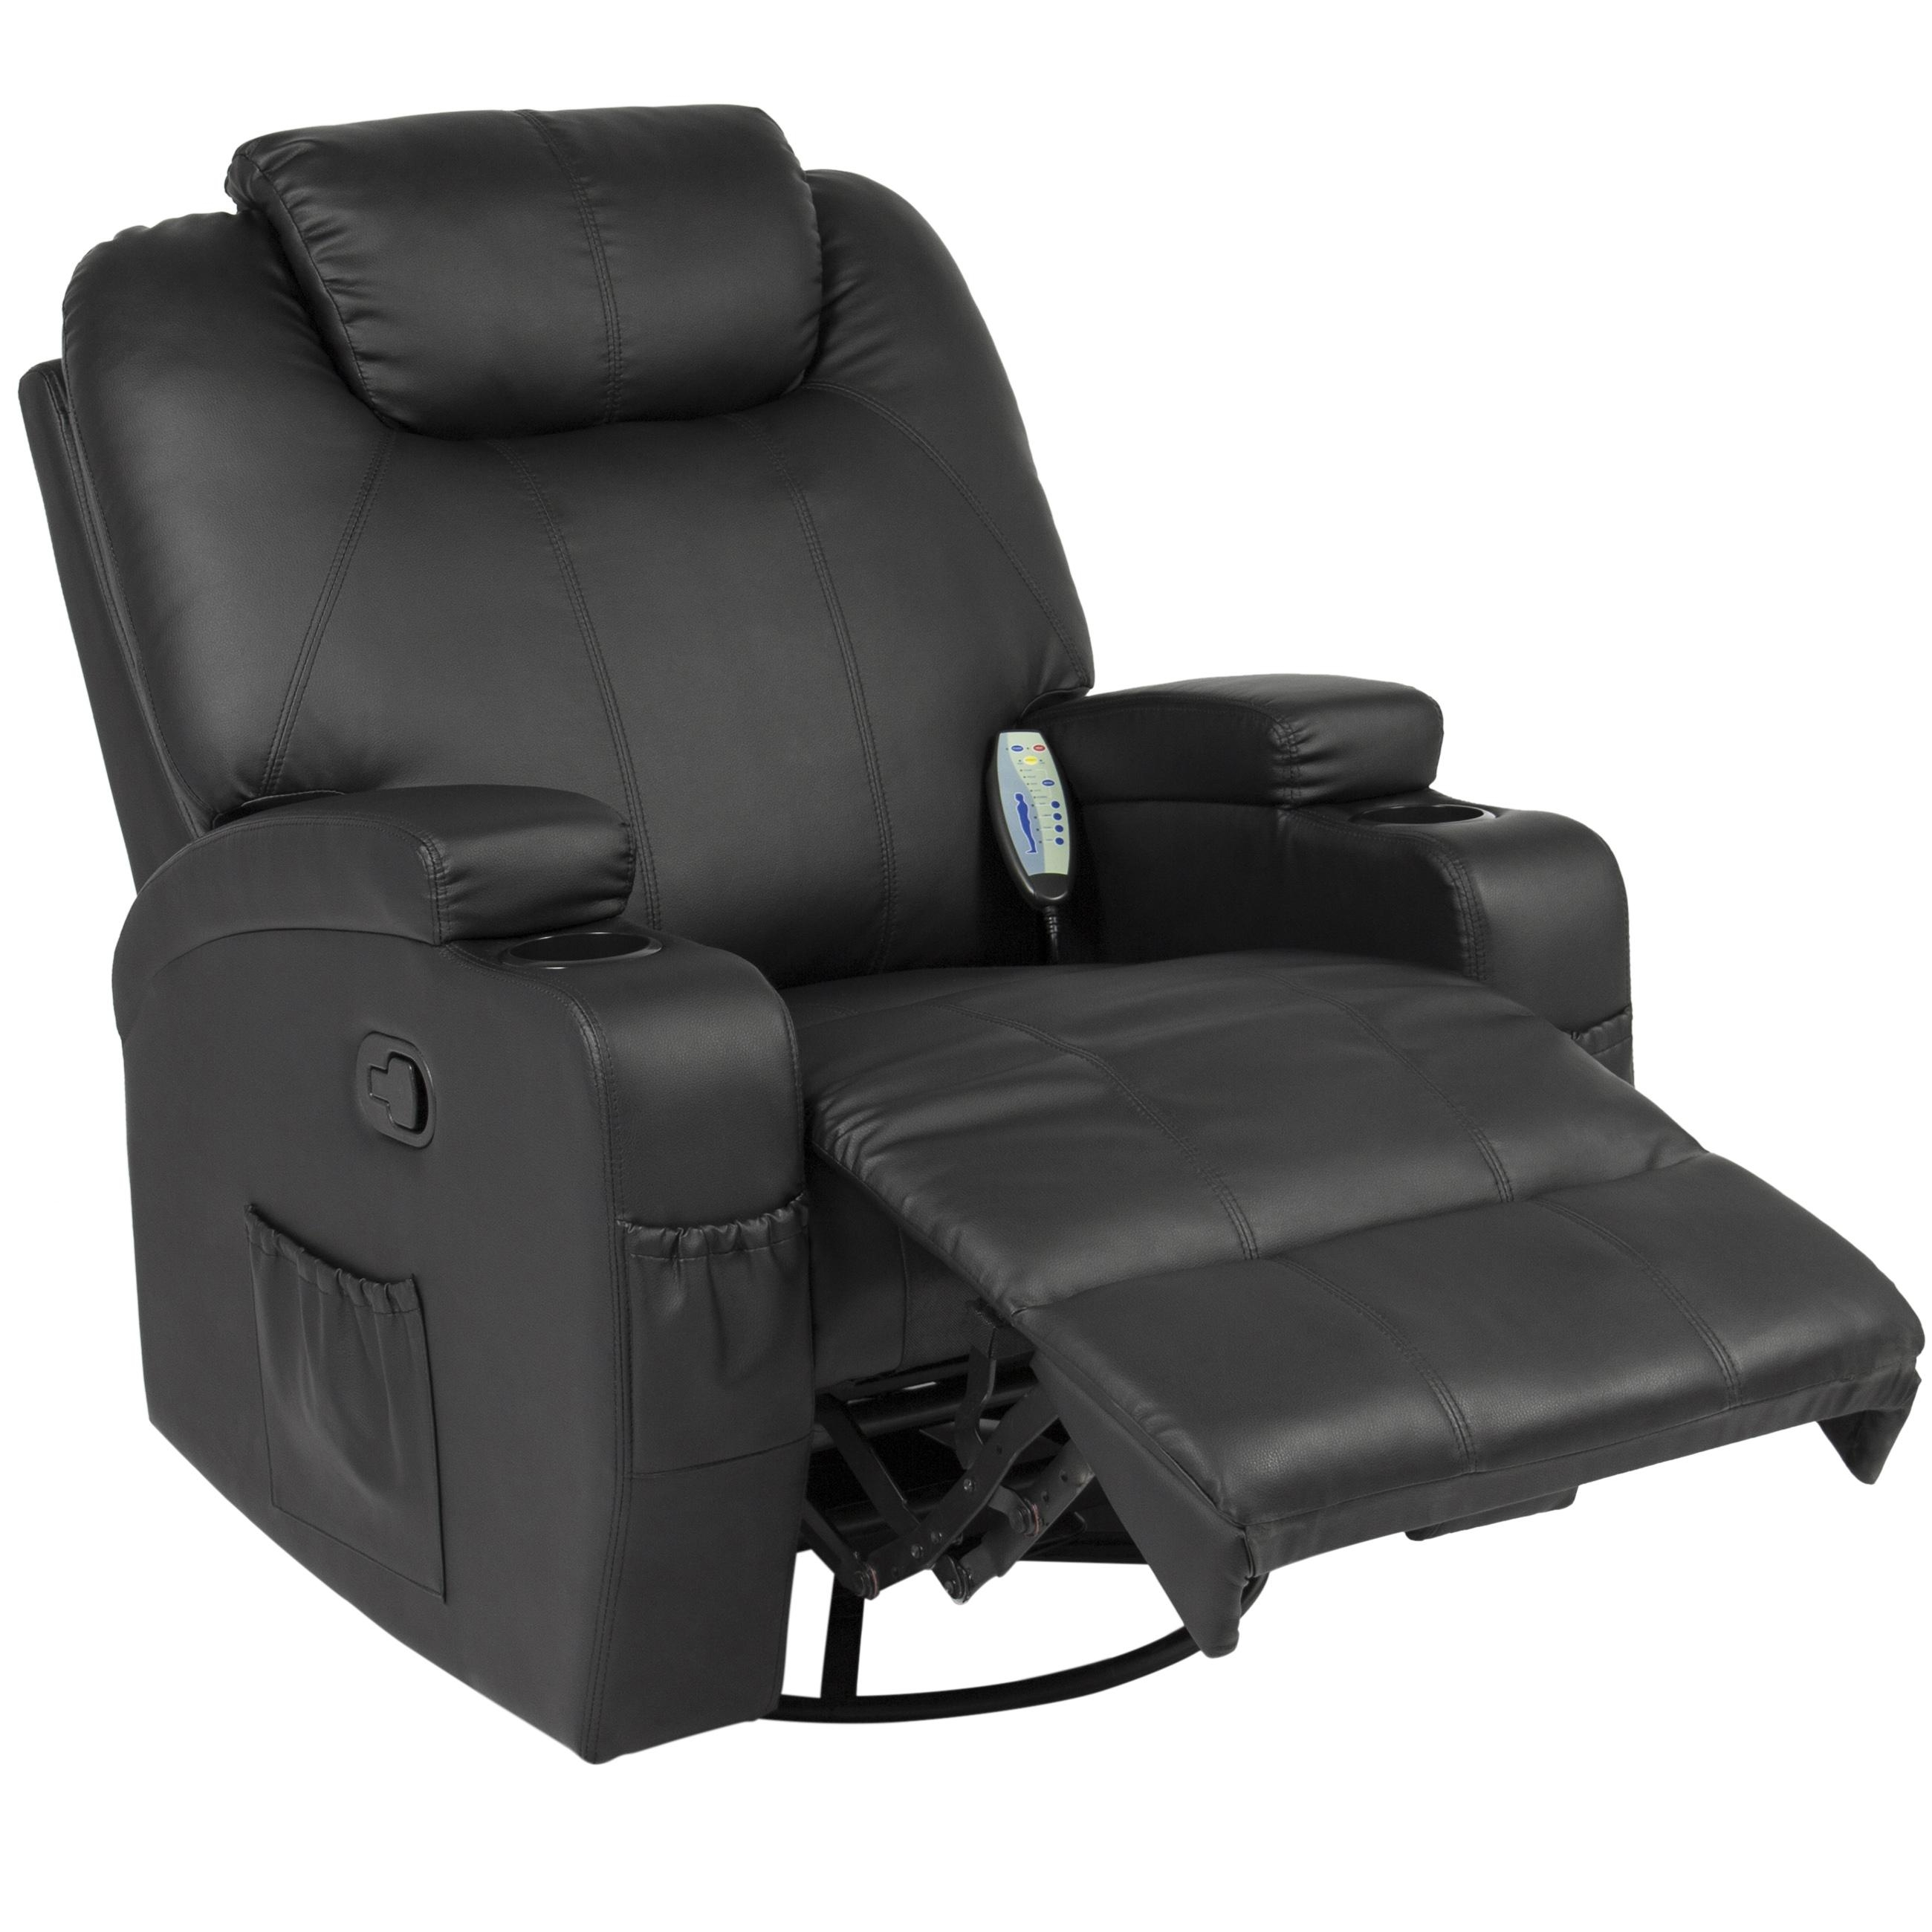 Massage Recliner Sofa Chair Heated W/control Ergonomic Executive Inside Sofa Chair Recliner (Image 12 of 20)